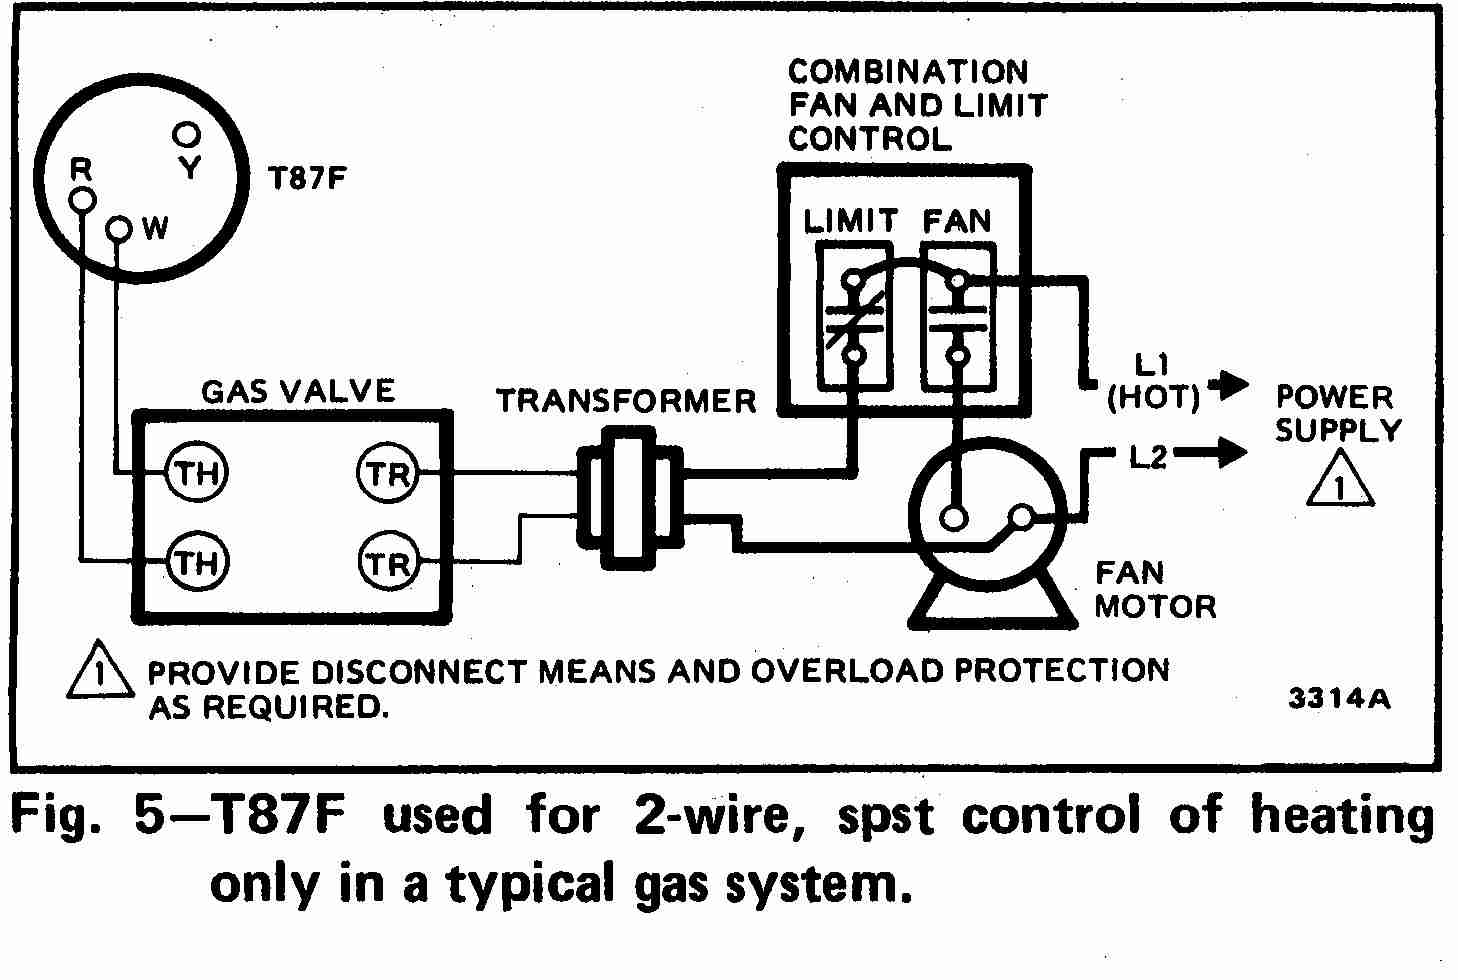 8 Wire Ac Motor Diagram Center Wiring Window Air Conditioner Electric Automotive Rh Exmouthhomecomputers Co Uk Plug